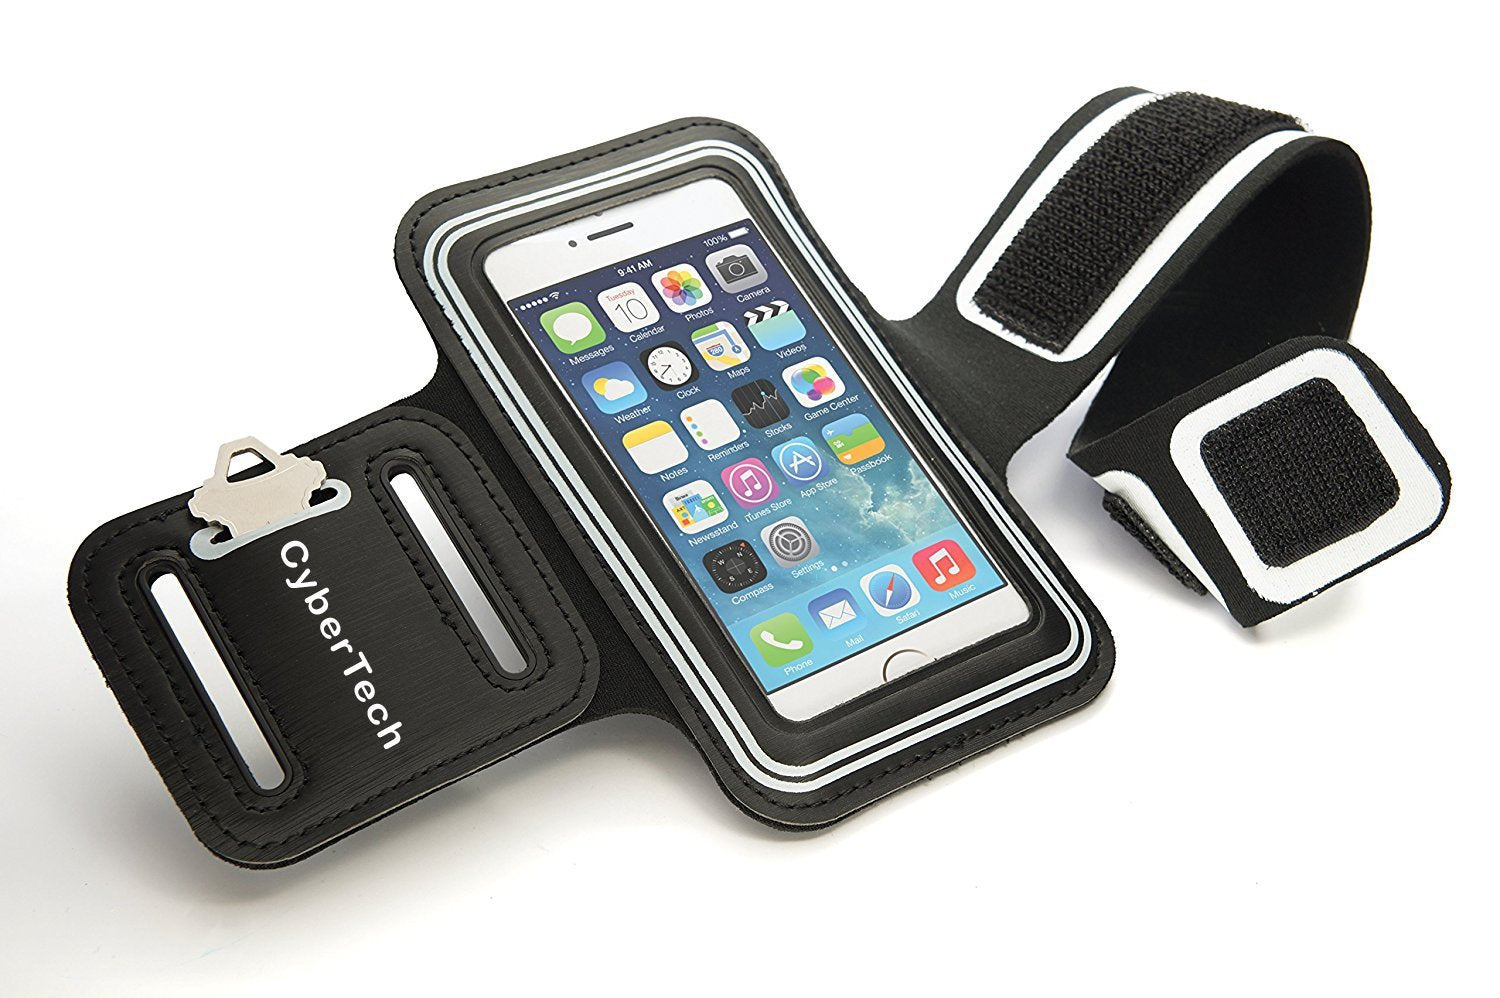 CyberTech Sport Armband Case for Samsung Galaxy S2 S3 S4 S5, iPhone 4 4S 5 5S 5C, HTC, Nokia Lumia 521 (Black)